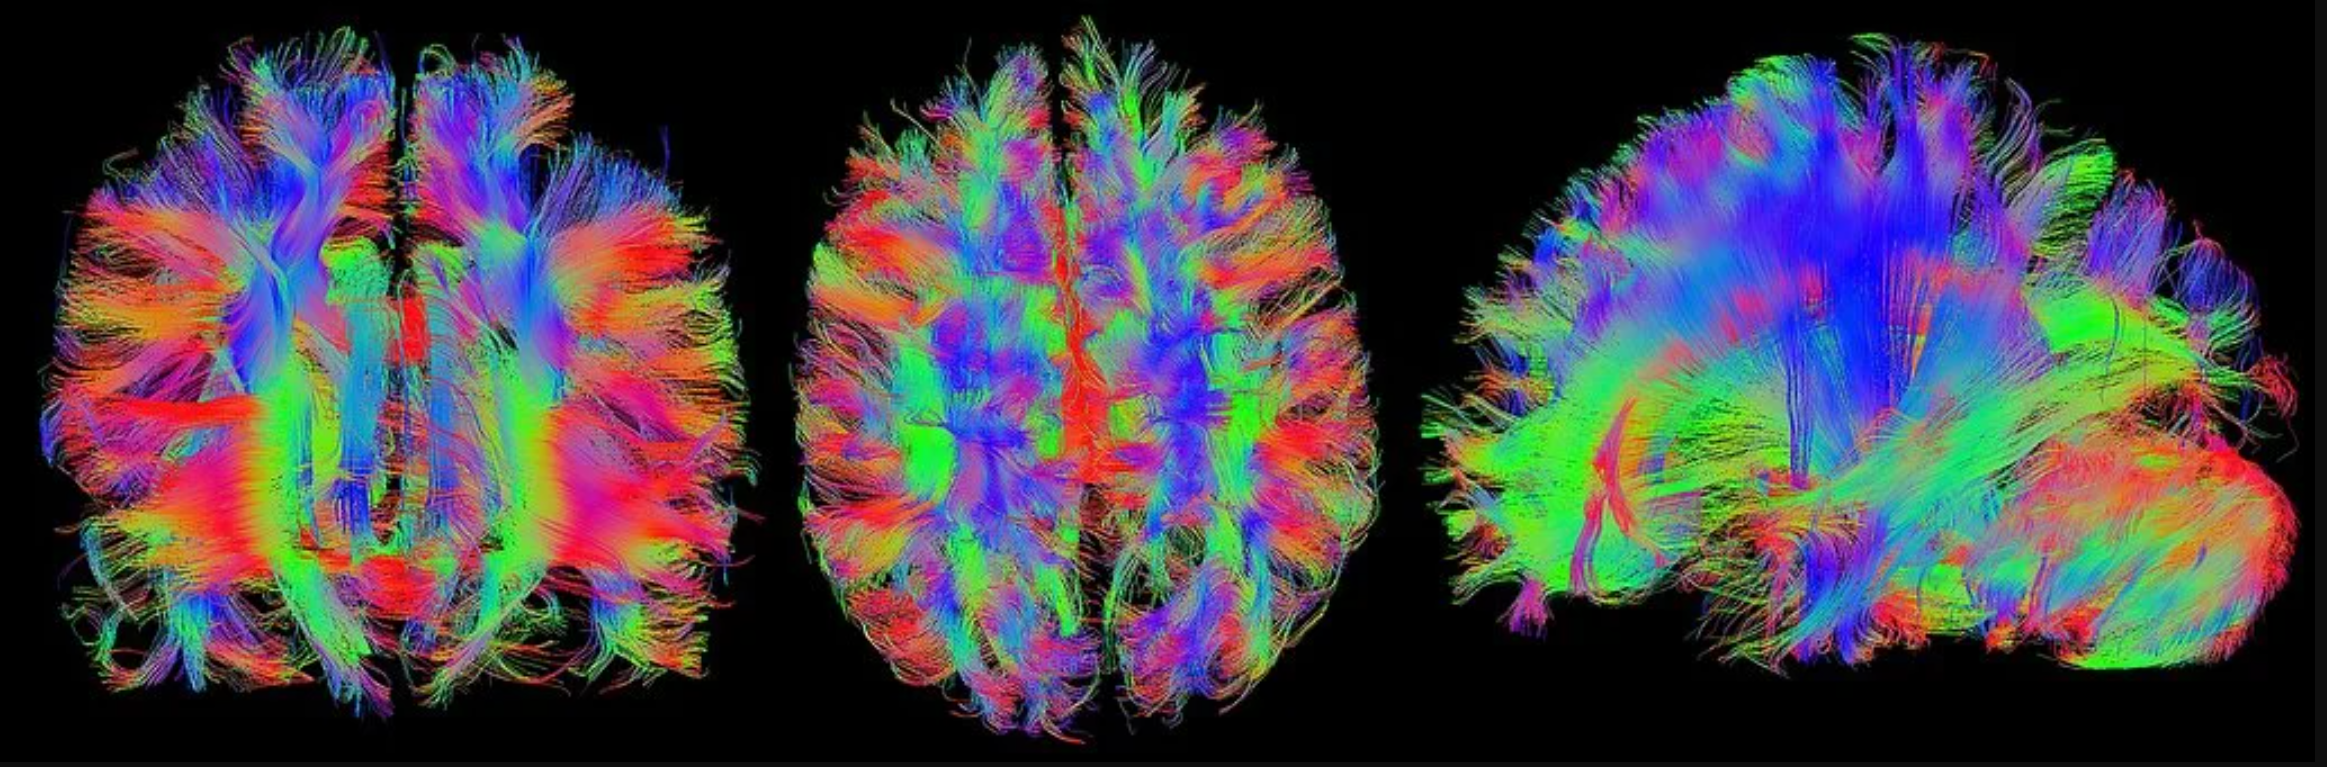 What Can Neuroscience Contribute to Economics?